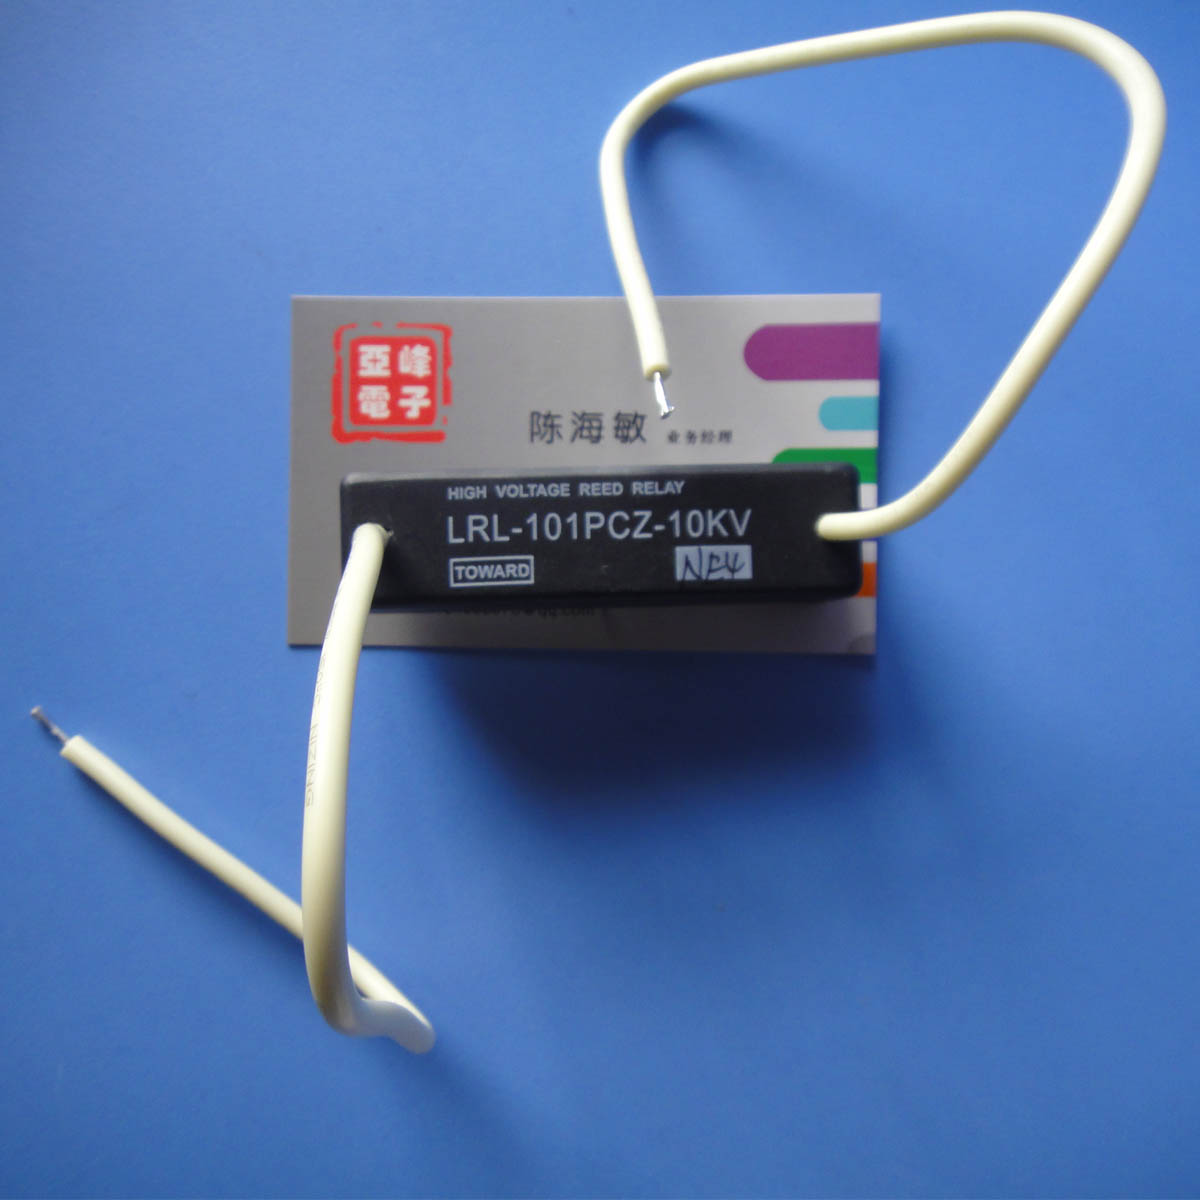 Aliexpresscom  Buy Free Delivery Reed Relays PCZ LRL   Kv - Reed relay normally open